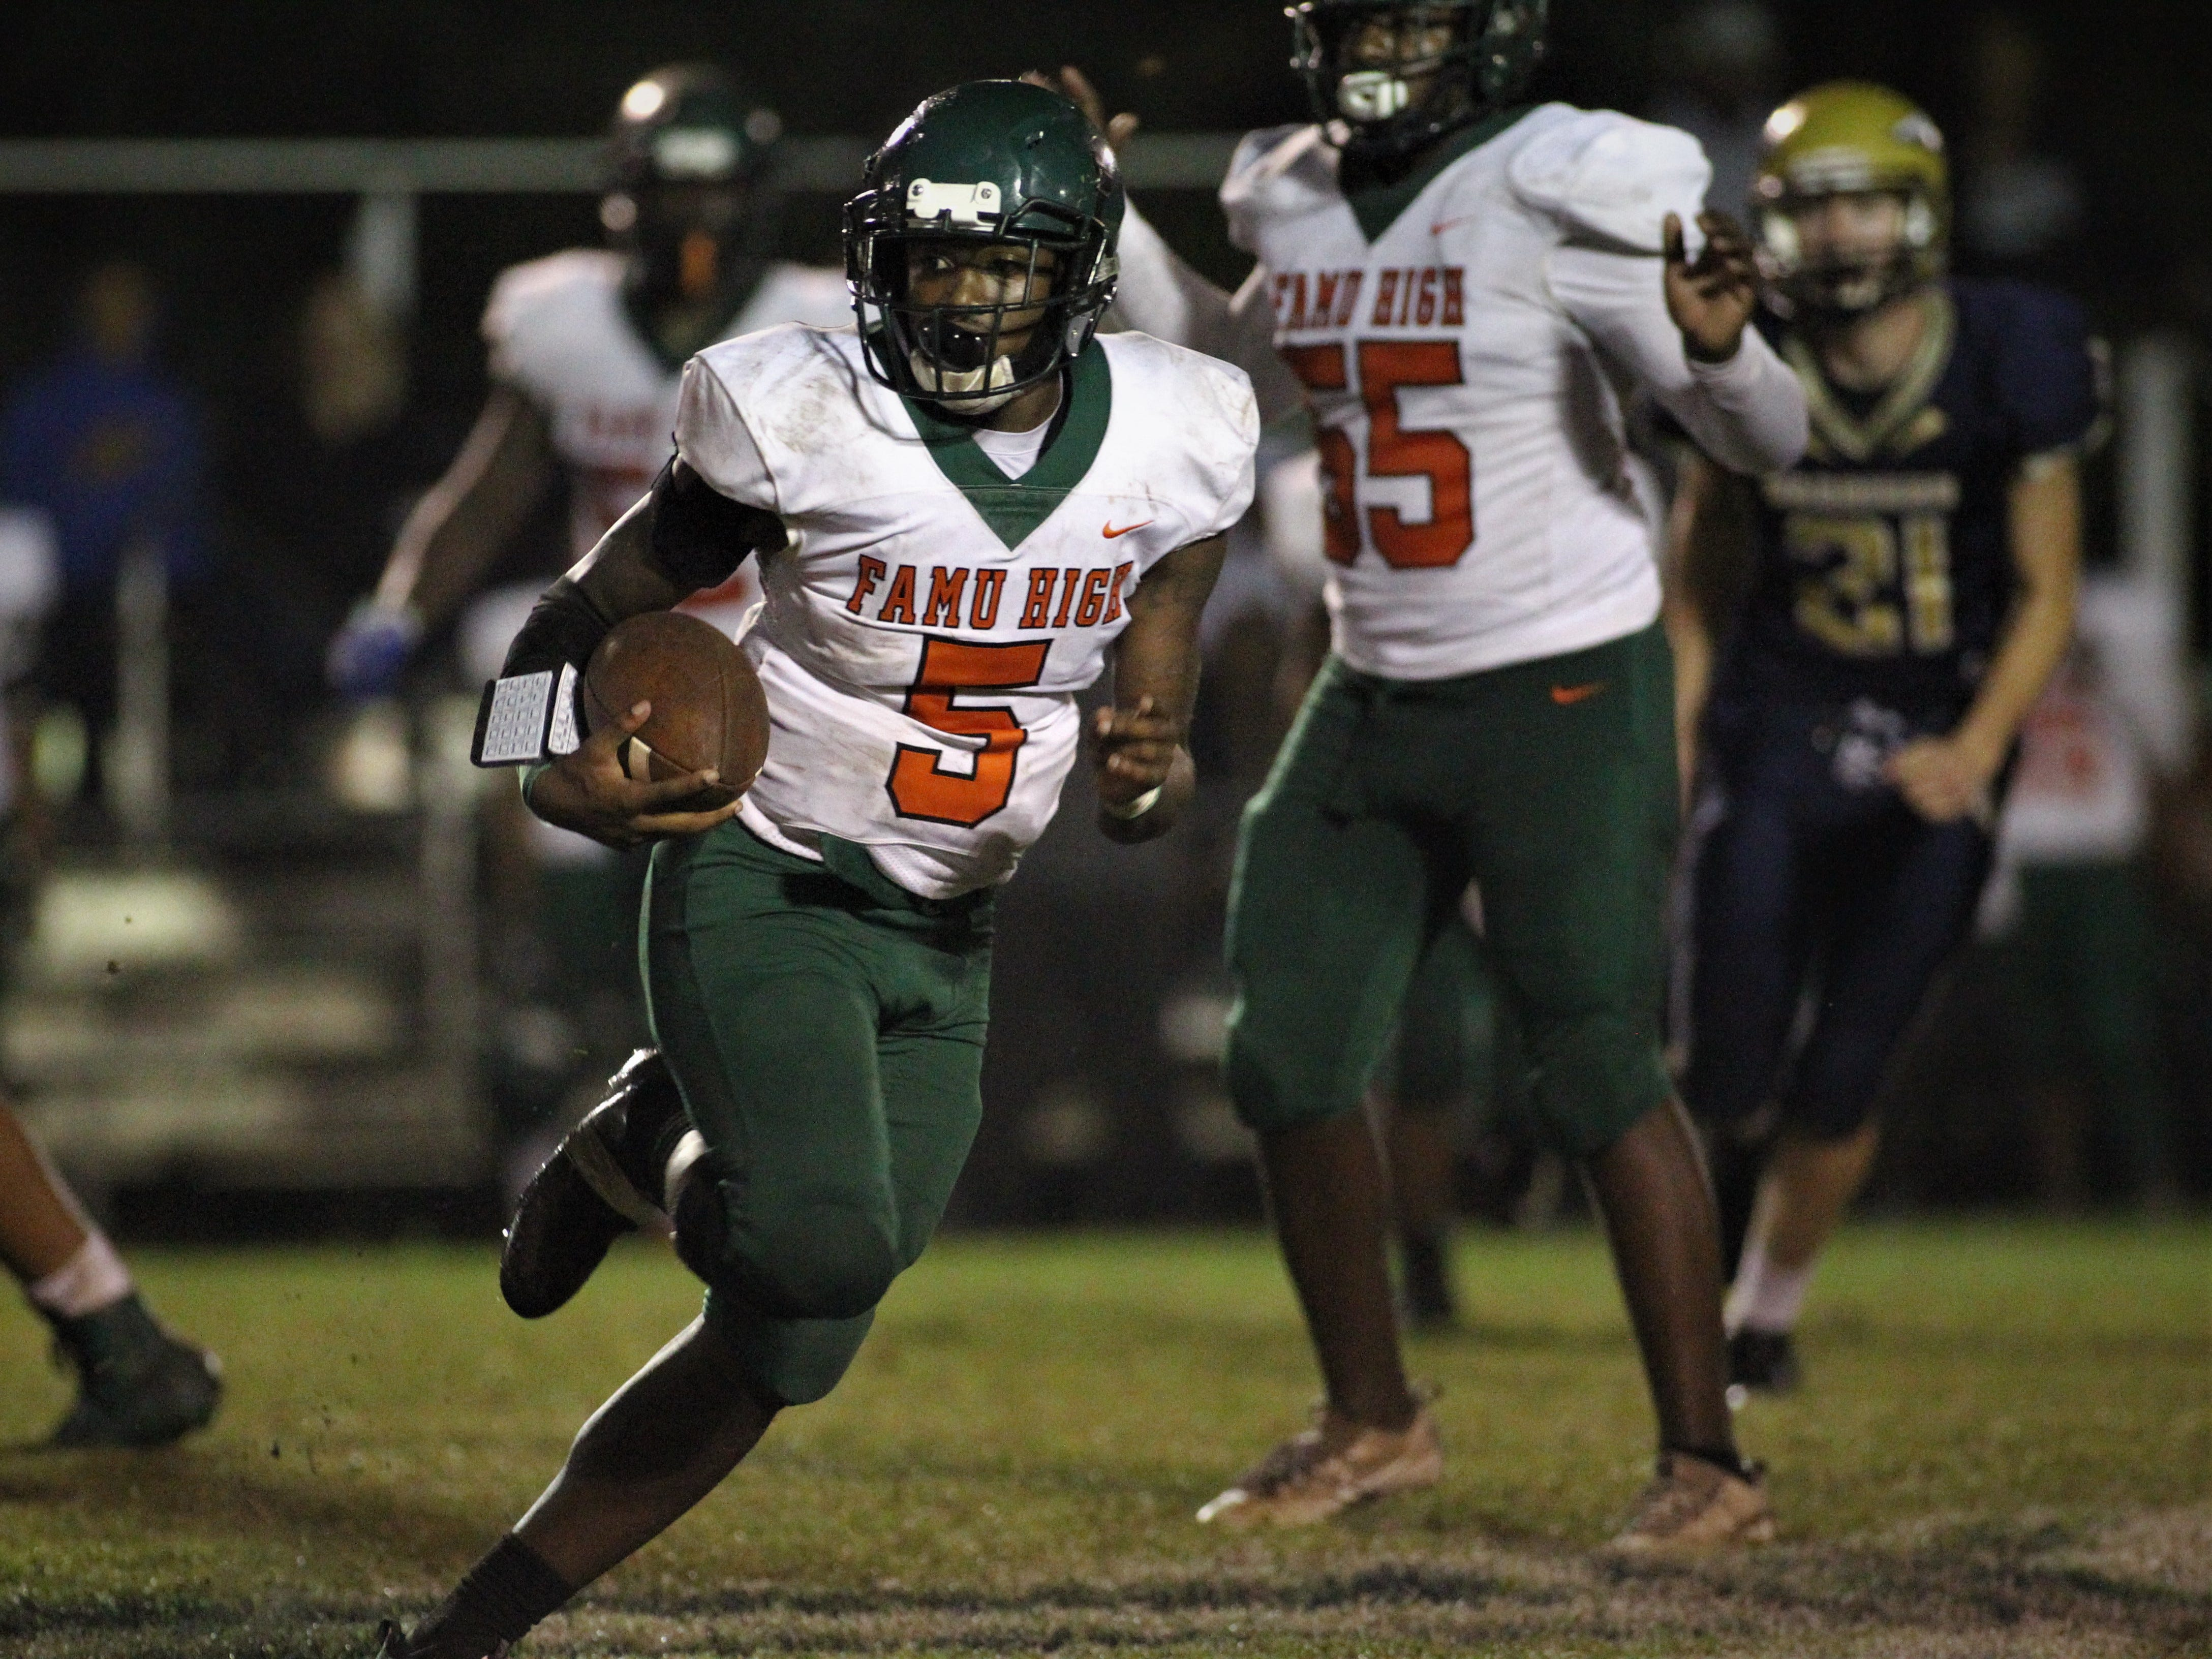 Rattlers quarterback Daryl Wilson ran for 85 yards and two touchdowns as FAMU DRS defeated Aucilla Christian 28-7 in a Region 1-2A quarterfinal playoff game on Friday, Nov. 9, 2018.